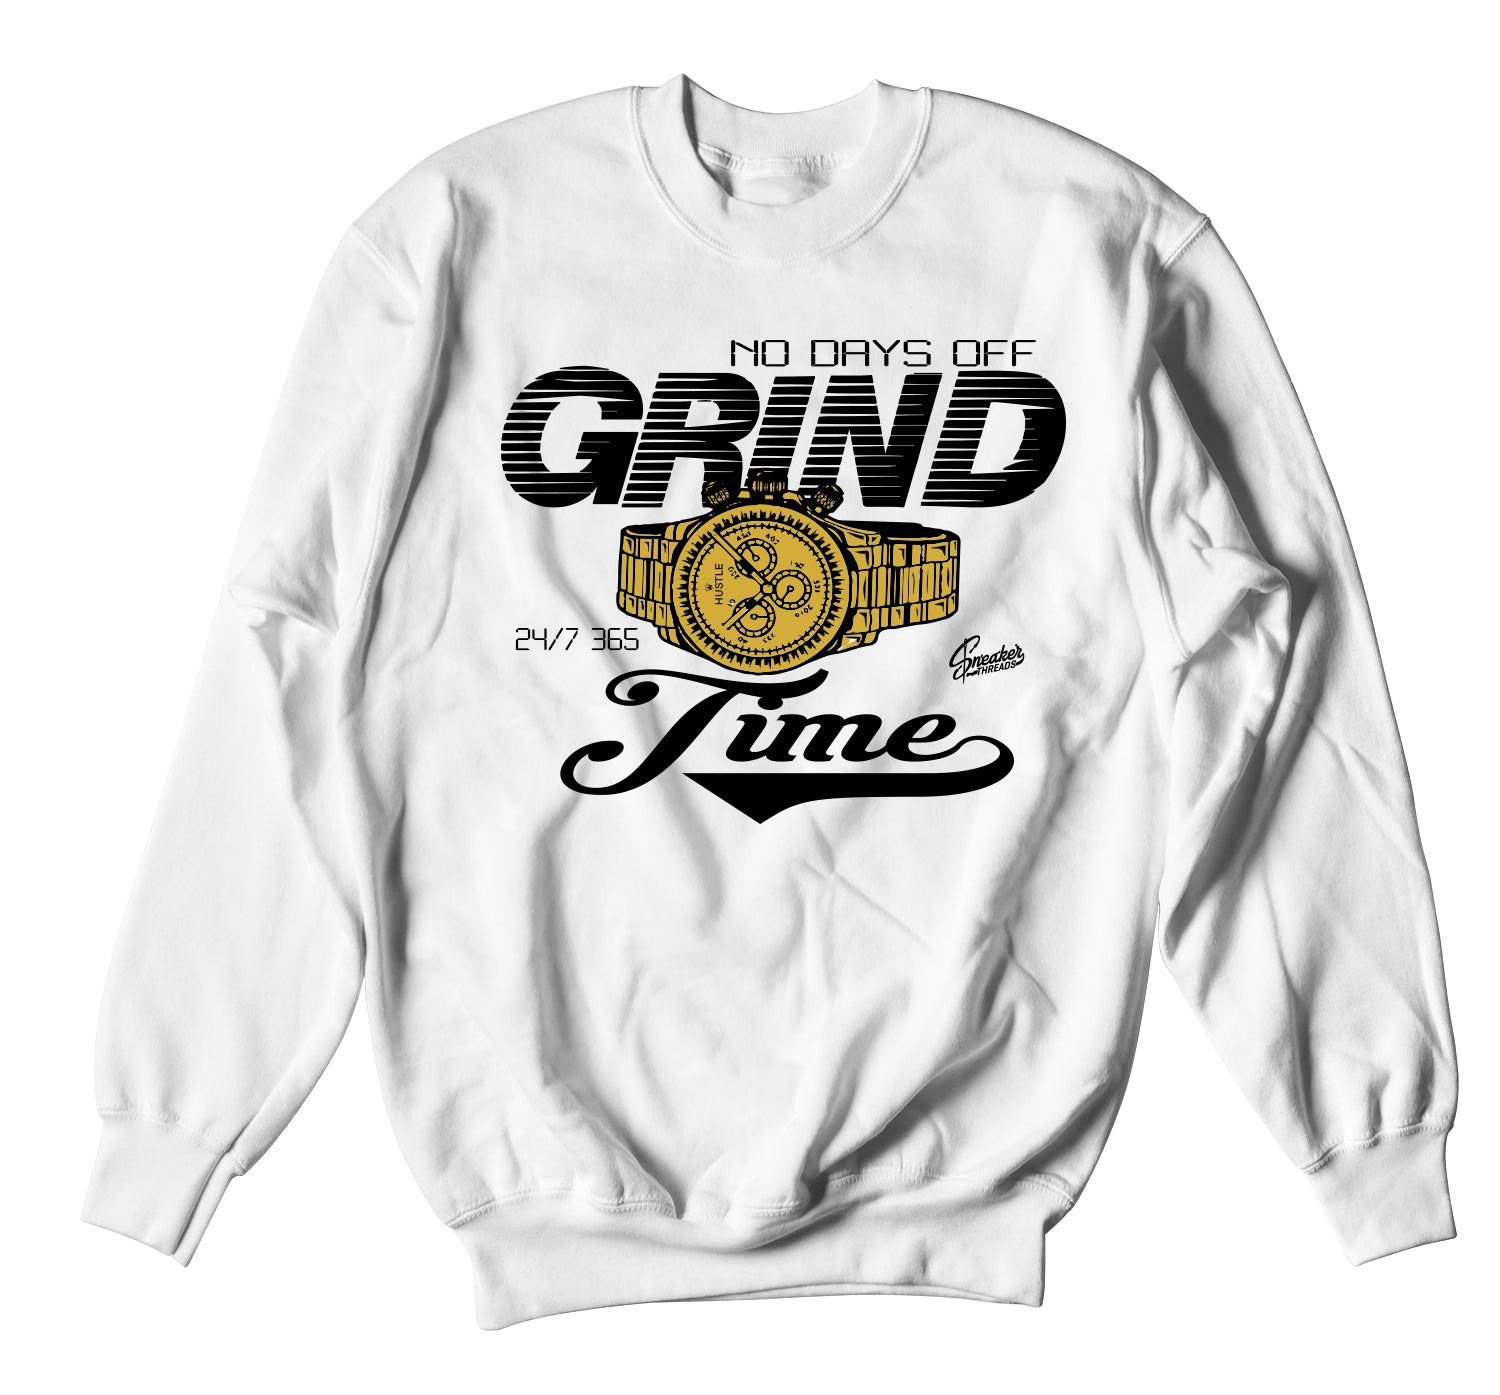 Jordan 6 DMP Grind Time Sweater